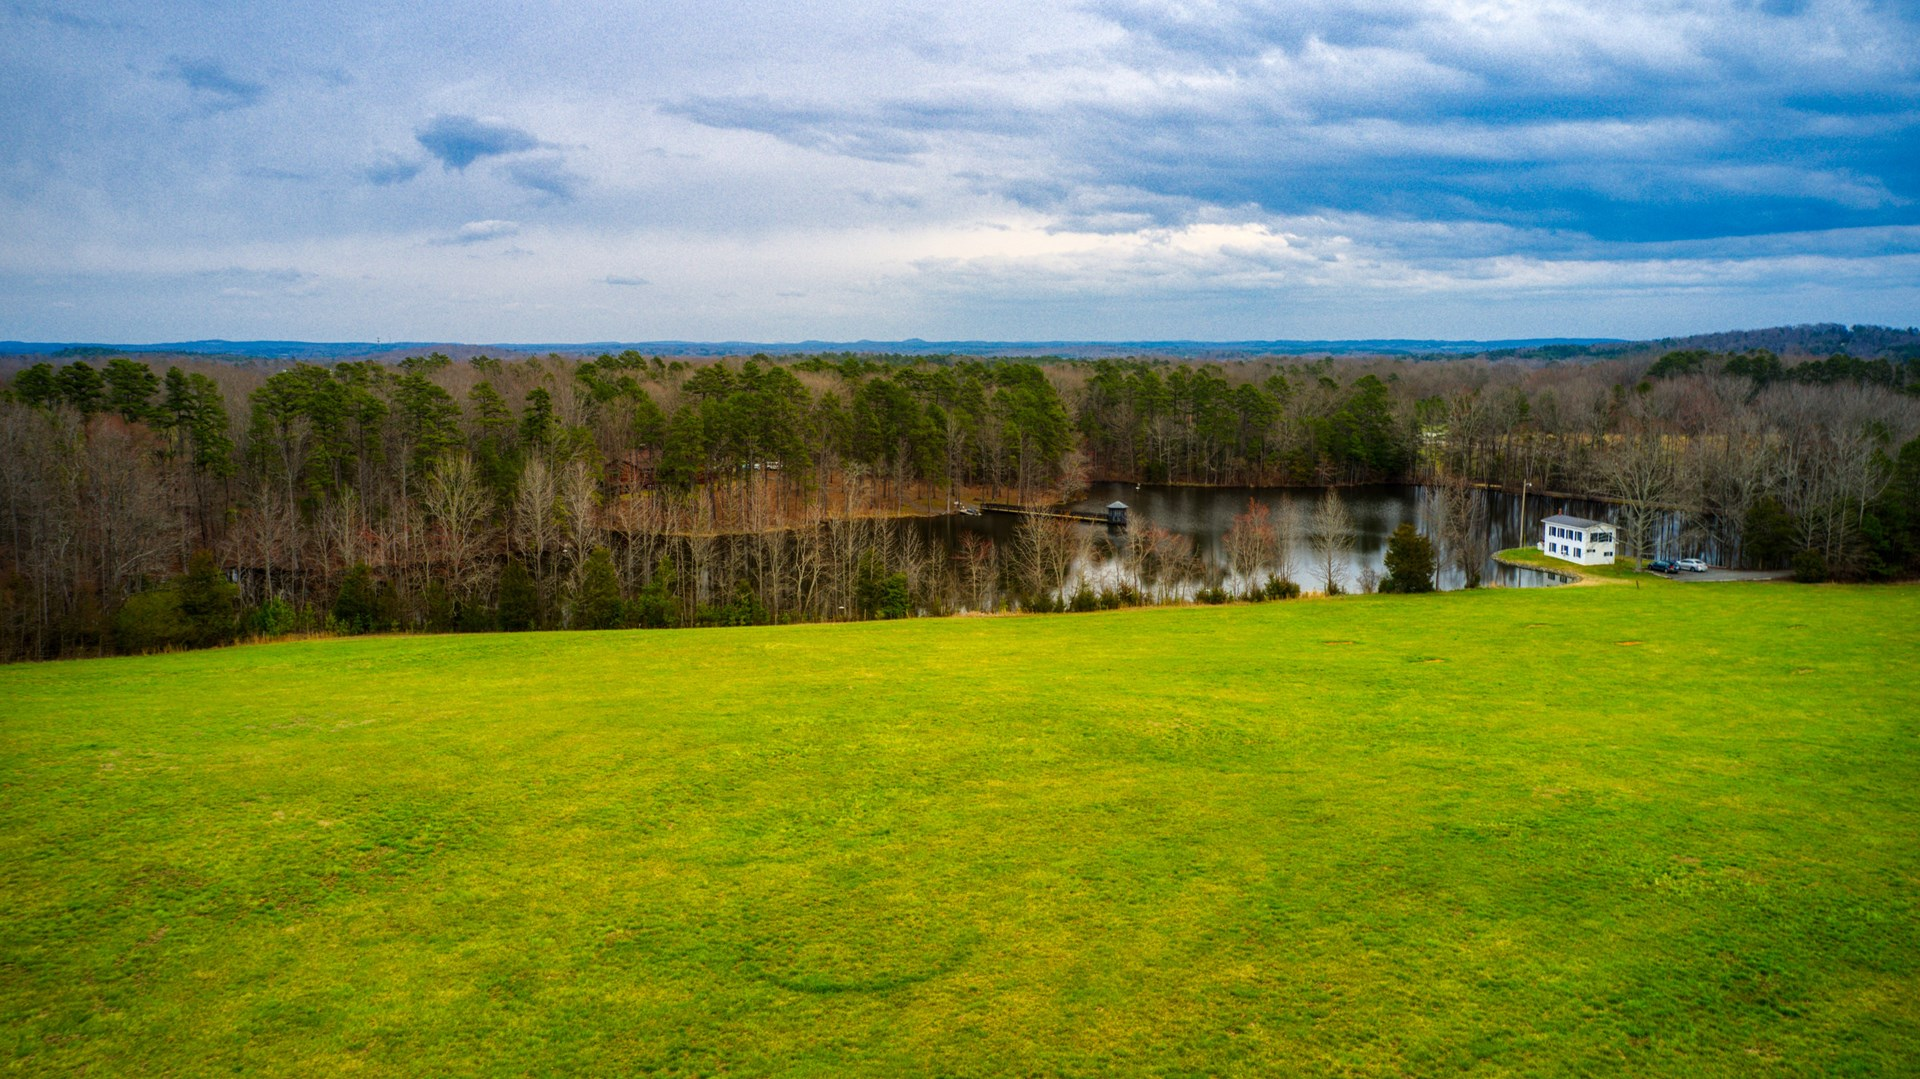 Residential Acreage For Sale With Lake Access